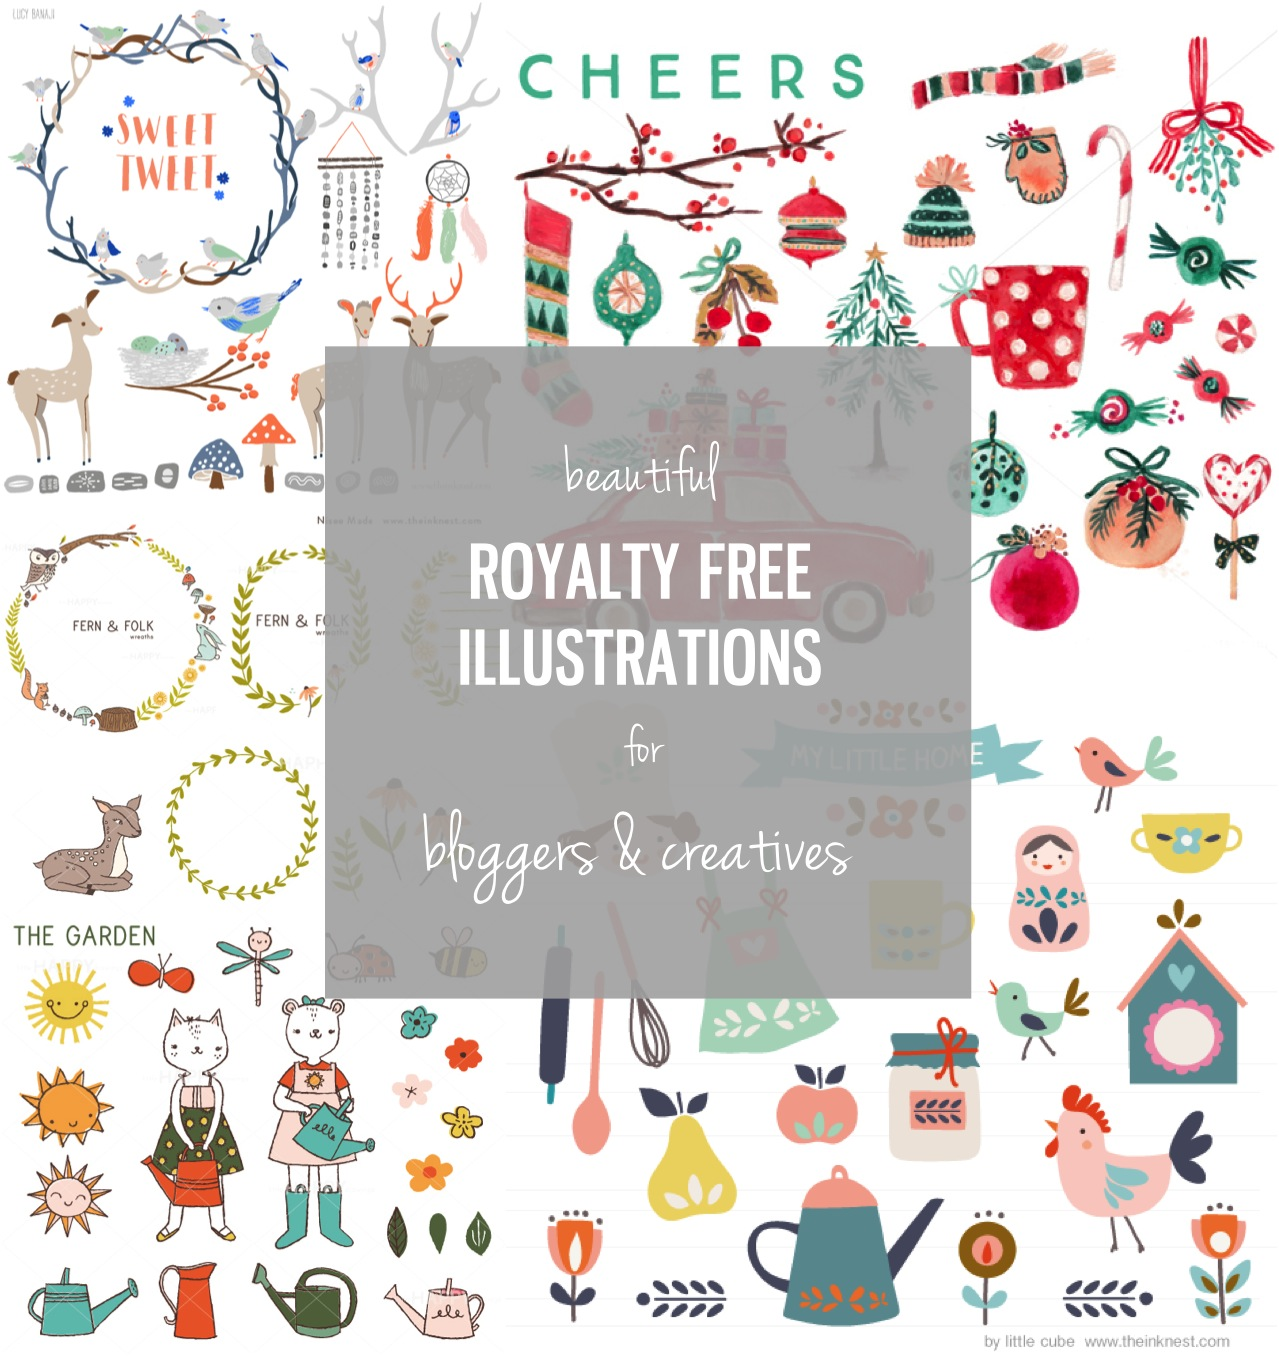 royalty free illustrations for bloggers